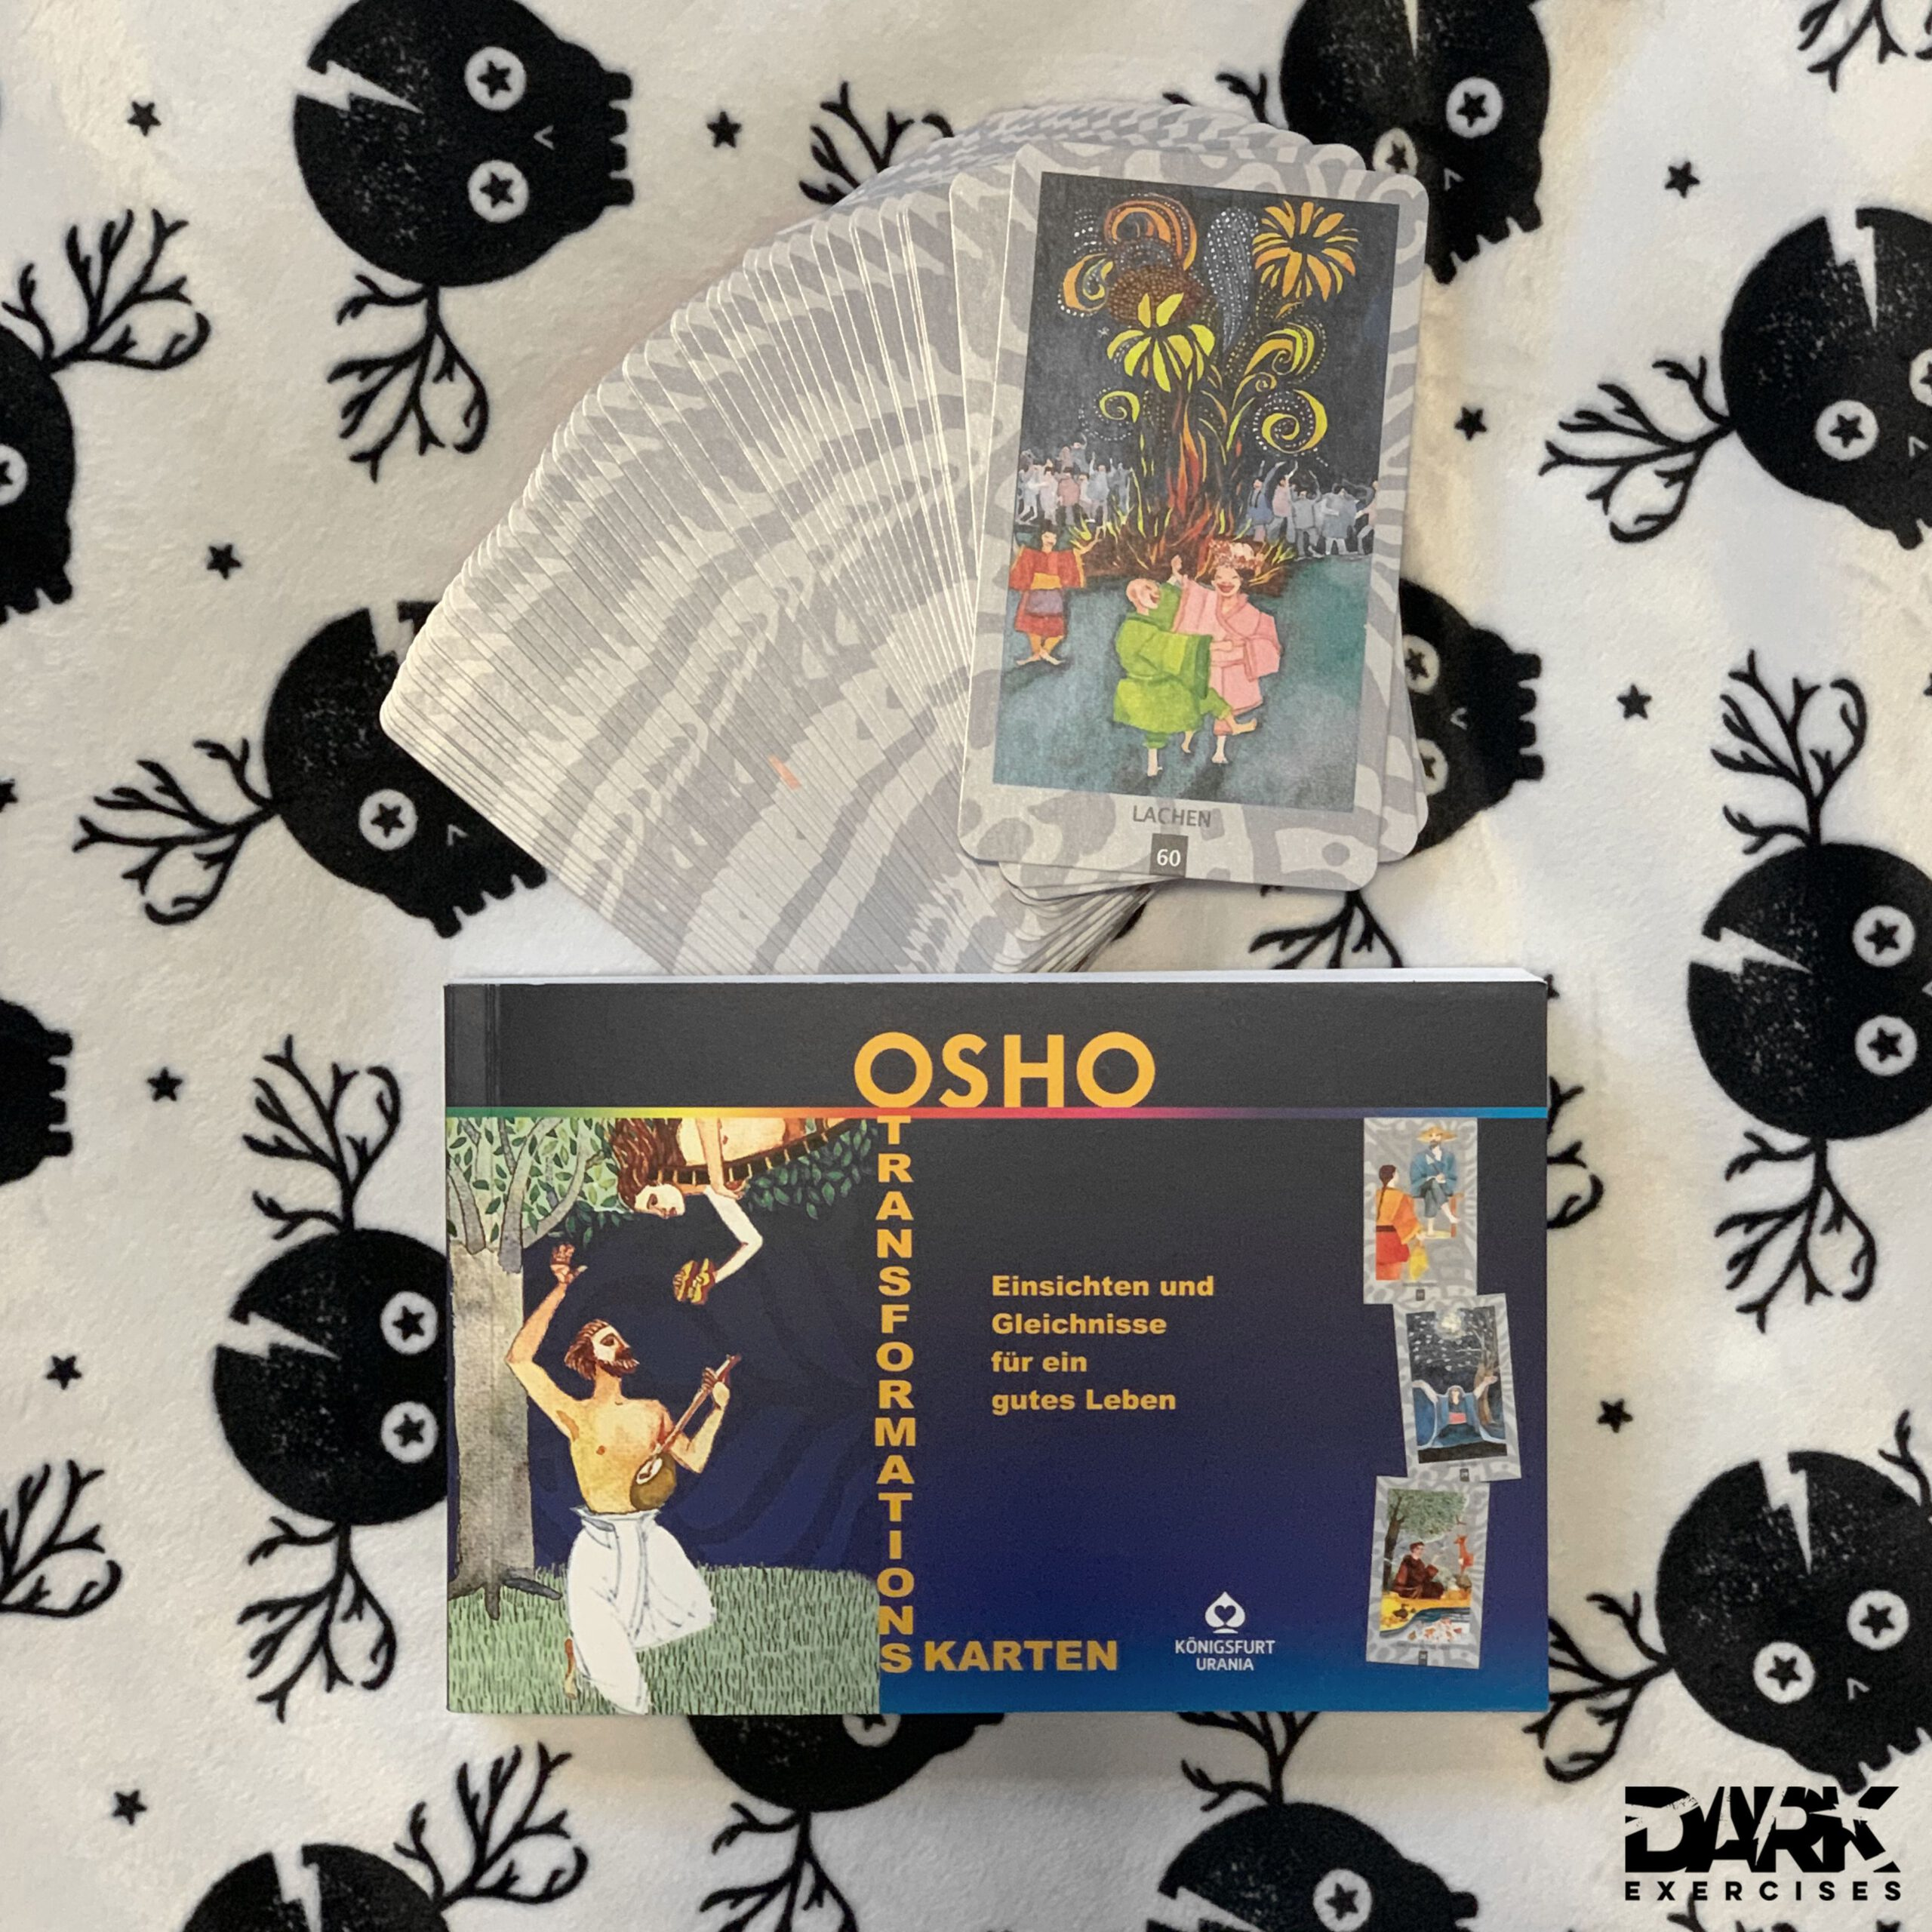 The story of laughter and many more stories can be found in the OSHO Transformation Card Box